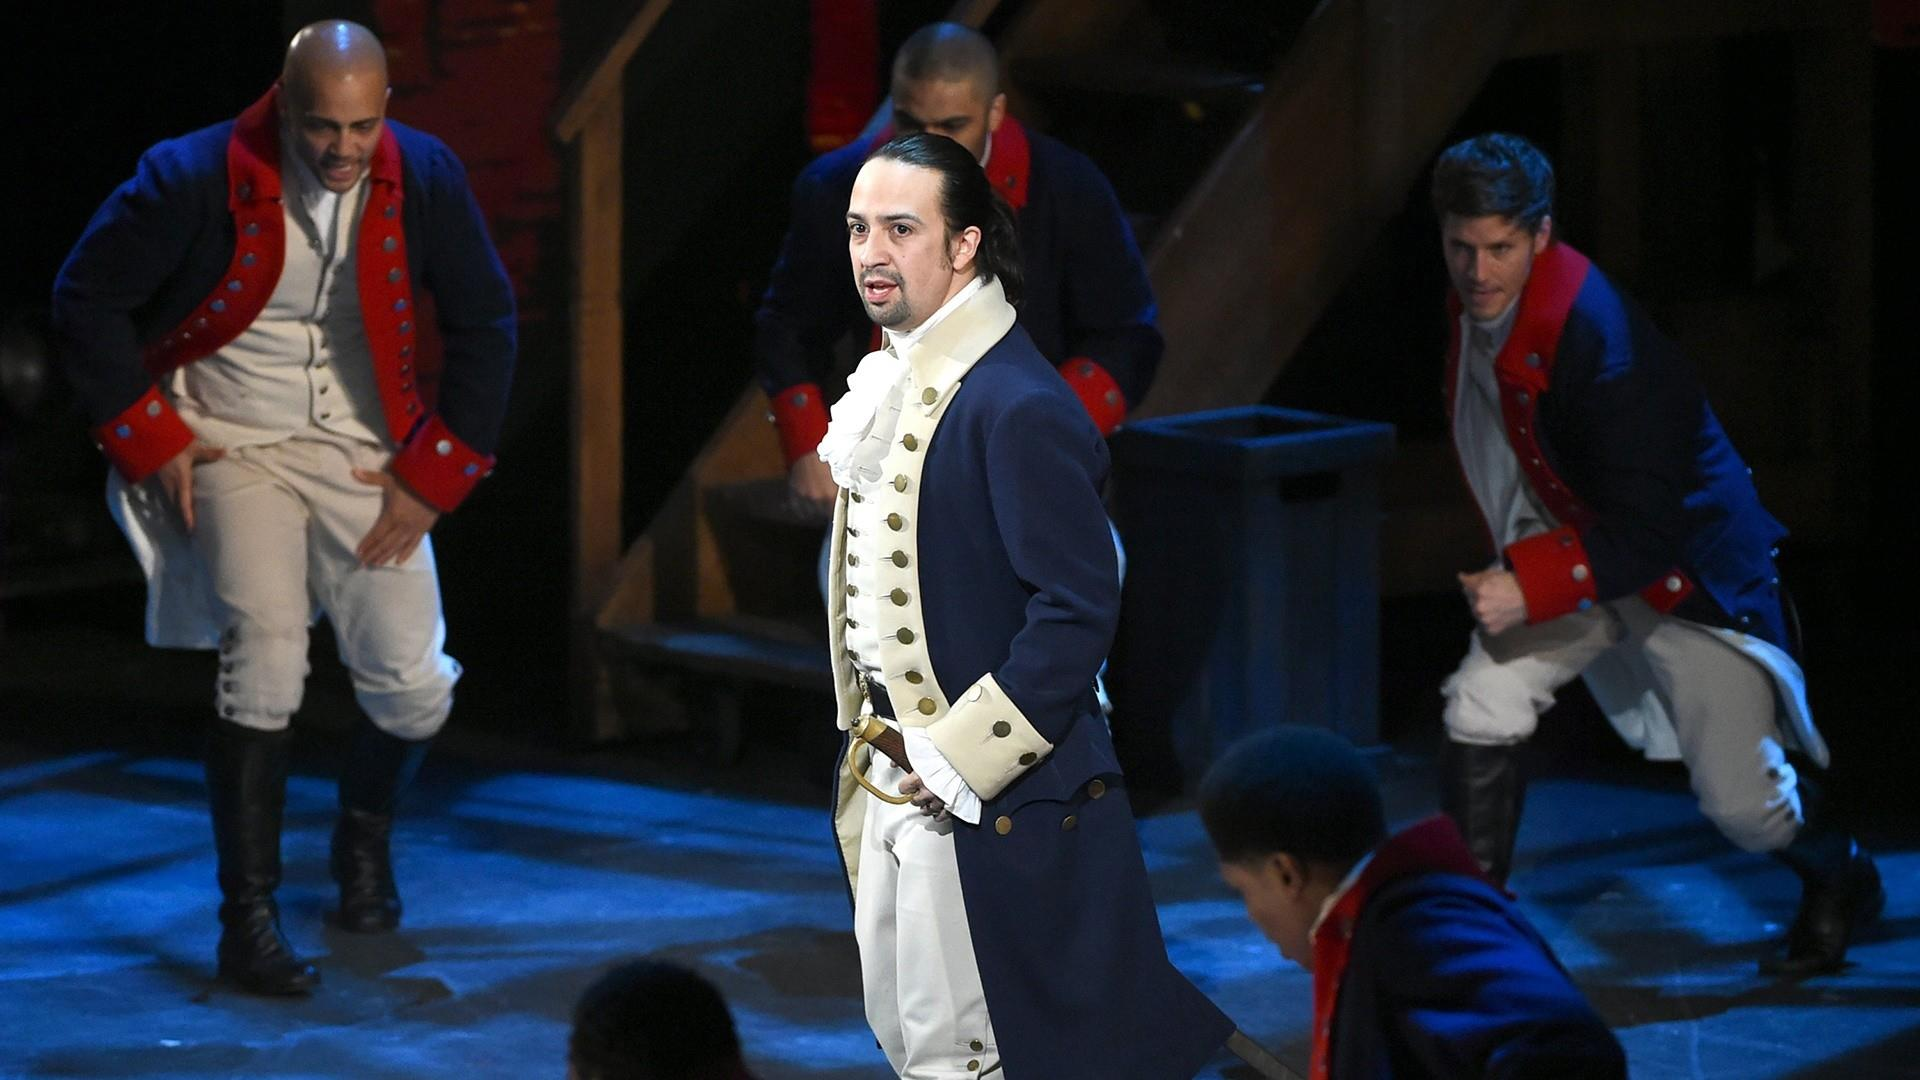 Lin Manuel Miranda S Wife Has A Hilarious Reaction During Her Husband S Kissing Scenes